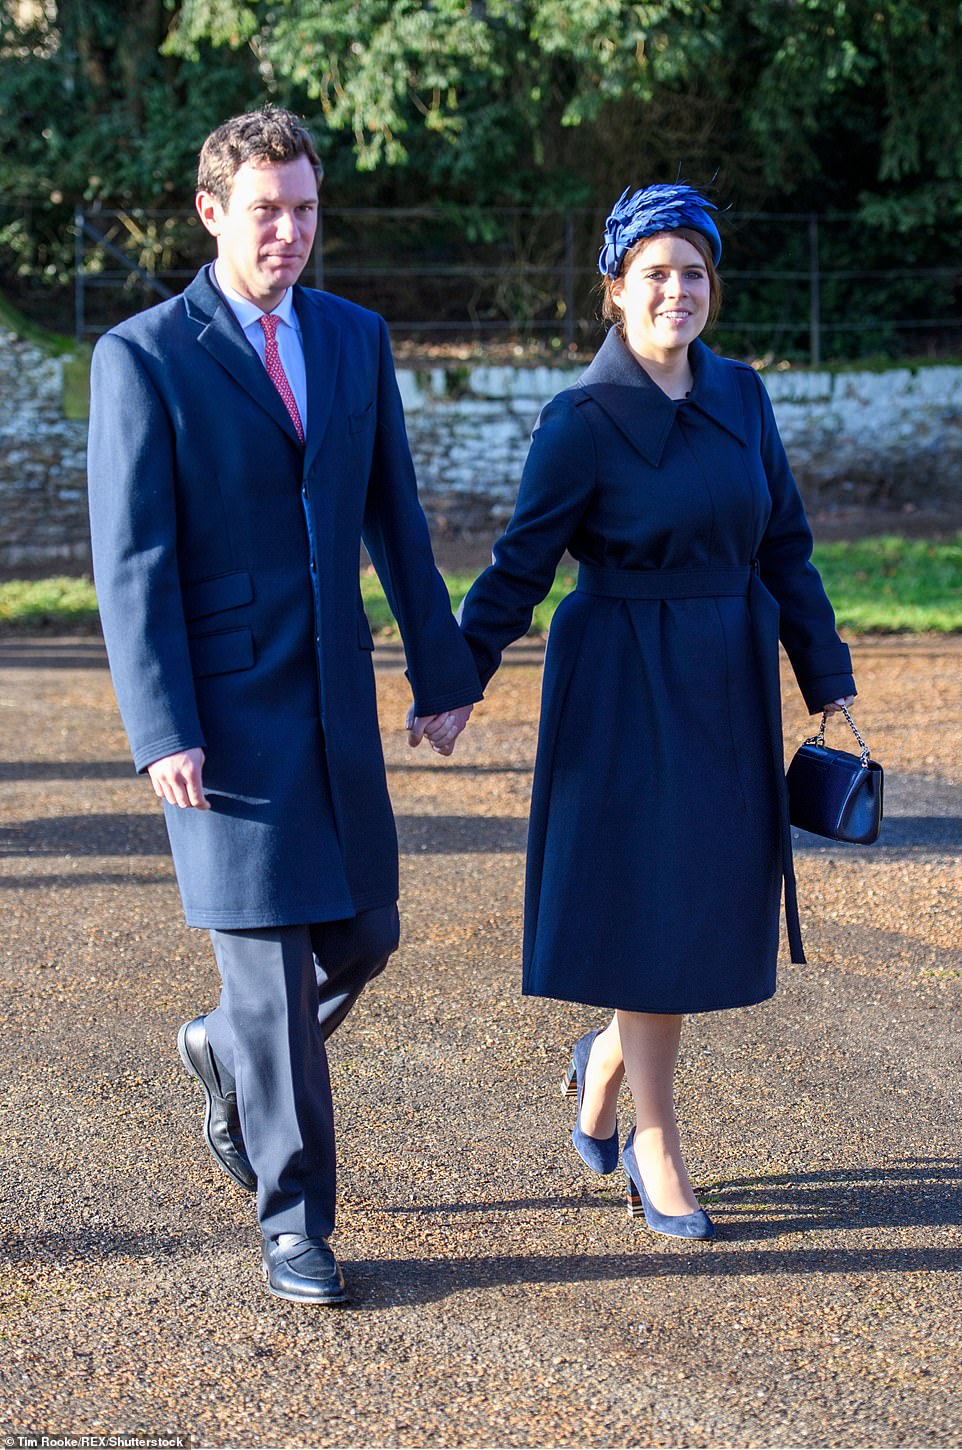 Jack Brooksbank, the husband of Eugenie, daughter of the duchess and the Duke of York, will also attend